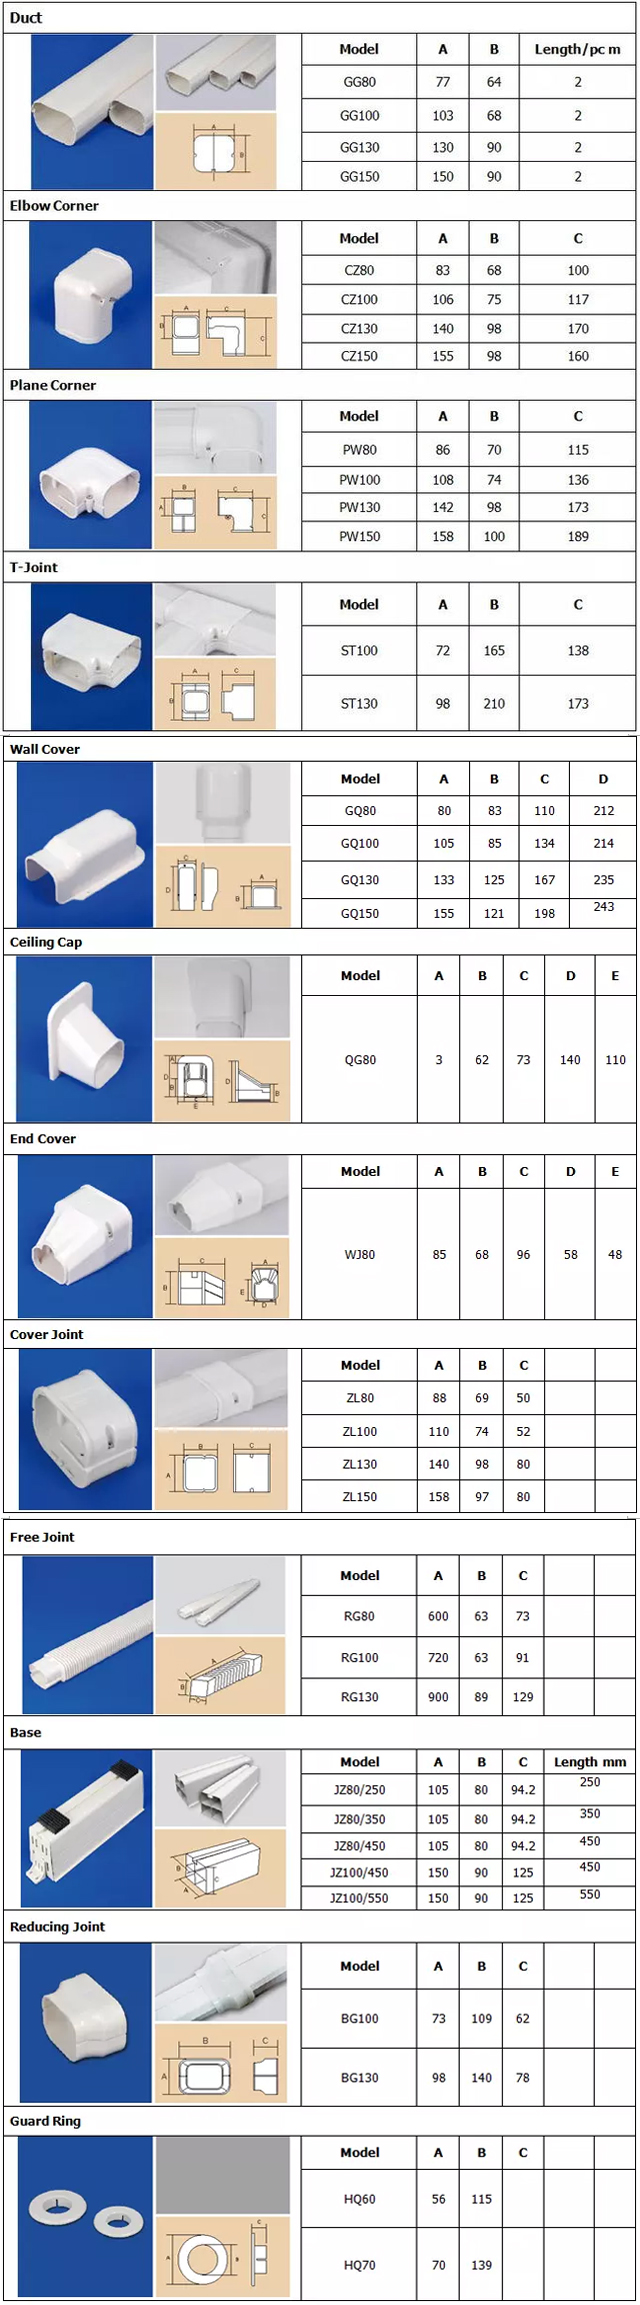 150mm White PVC Decorative Duct Kits Split Air Conditioner Pipe Cover Joint Straight Coupling